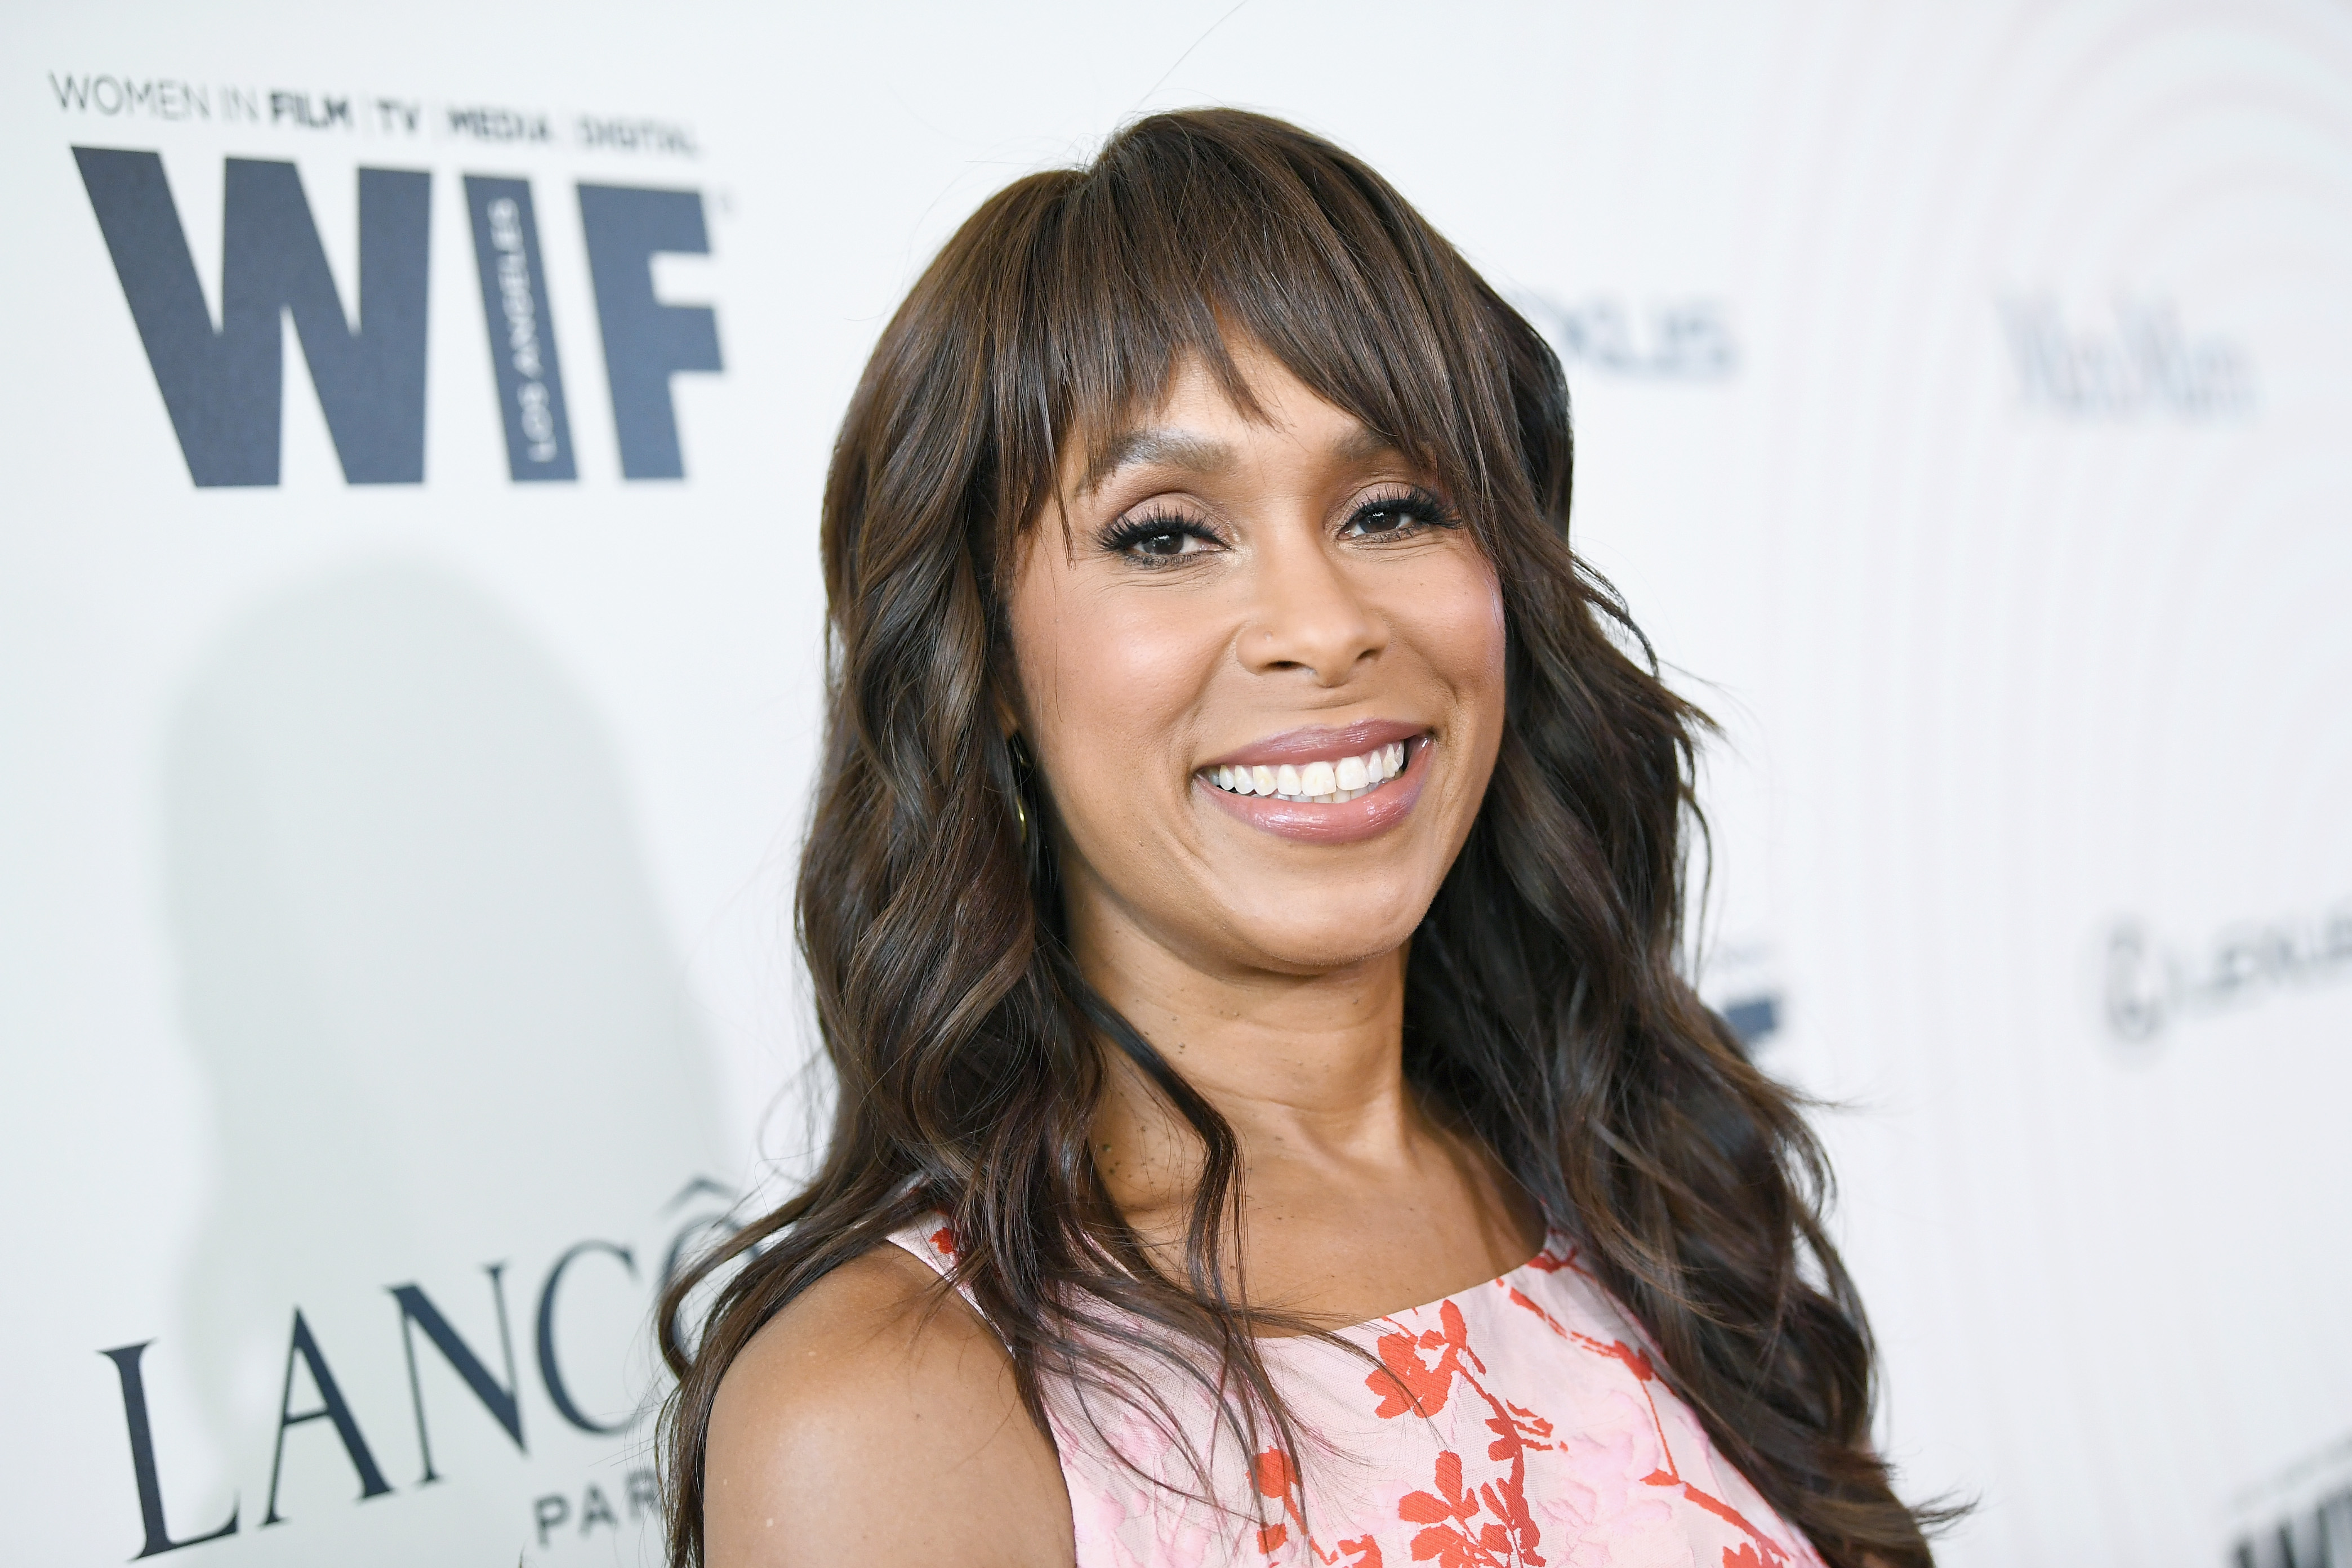 ABC Entertainment Group President Channing Dungey attends the Women In Film 2018 Crystal + Lucy Awards presented by Max Mara, Lancôme and Lexus at The Beverly Hilton Hotel on June 13, 2018 in Beverly Hills, California.